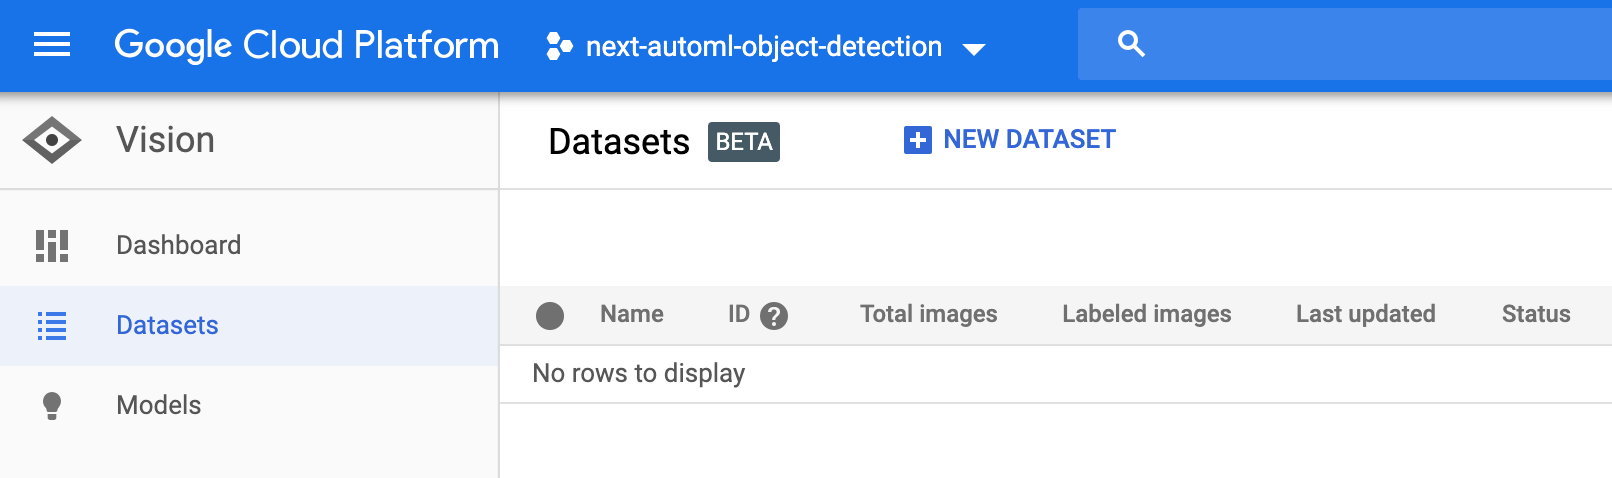 Select create new dataset